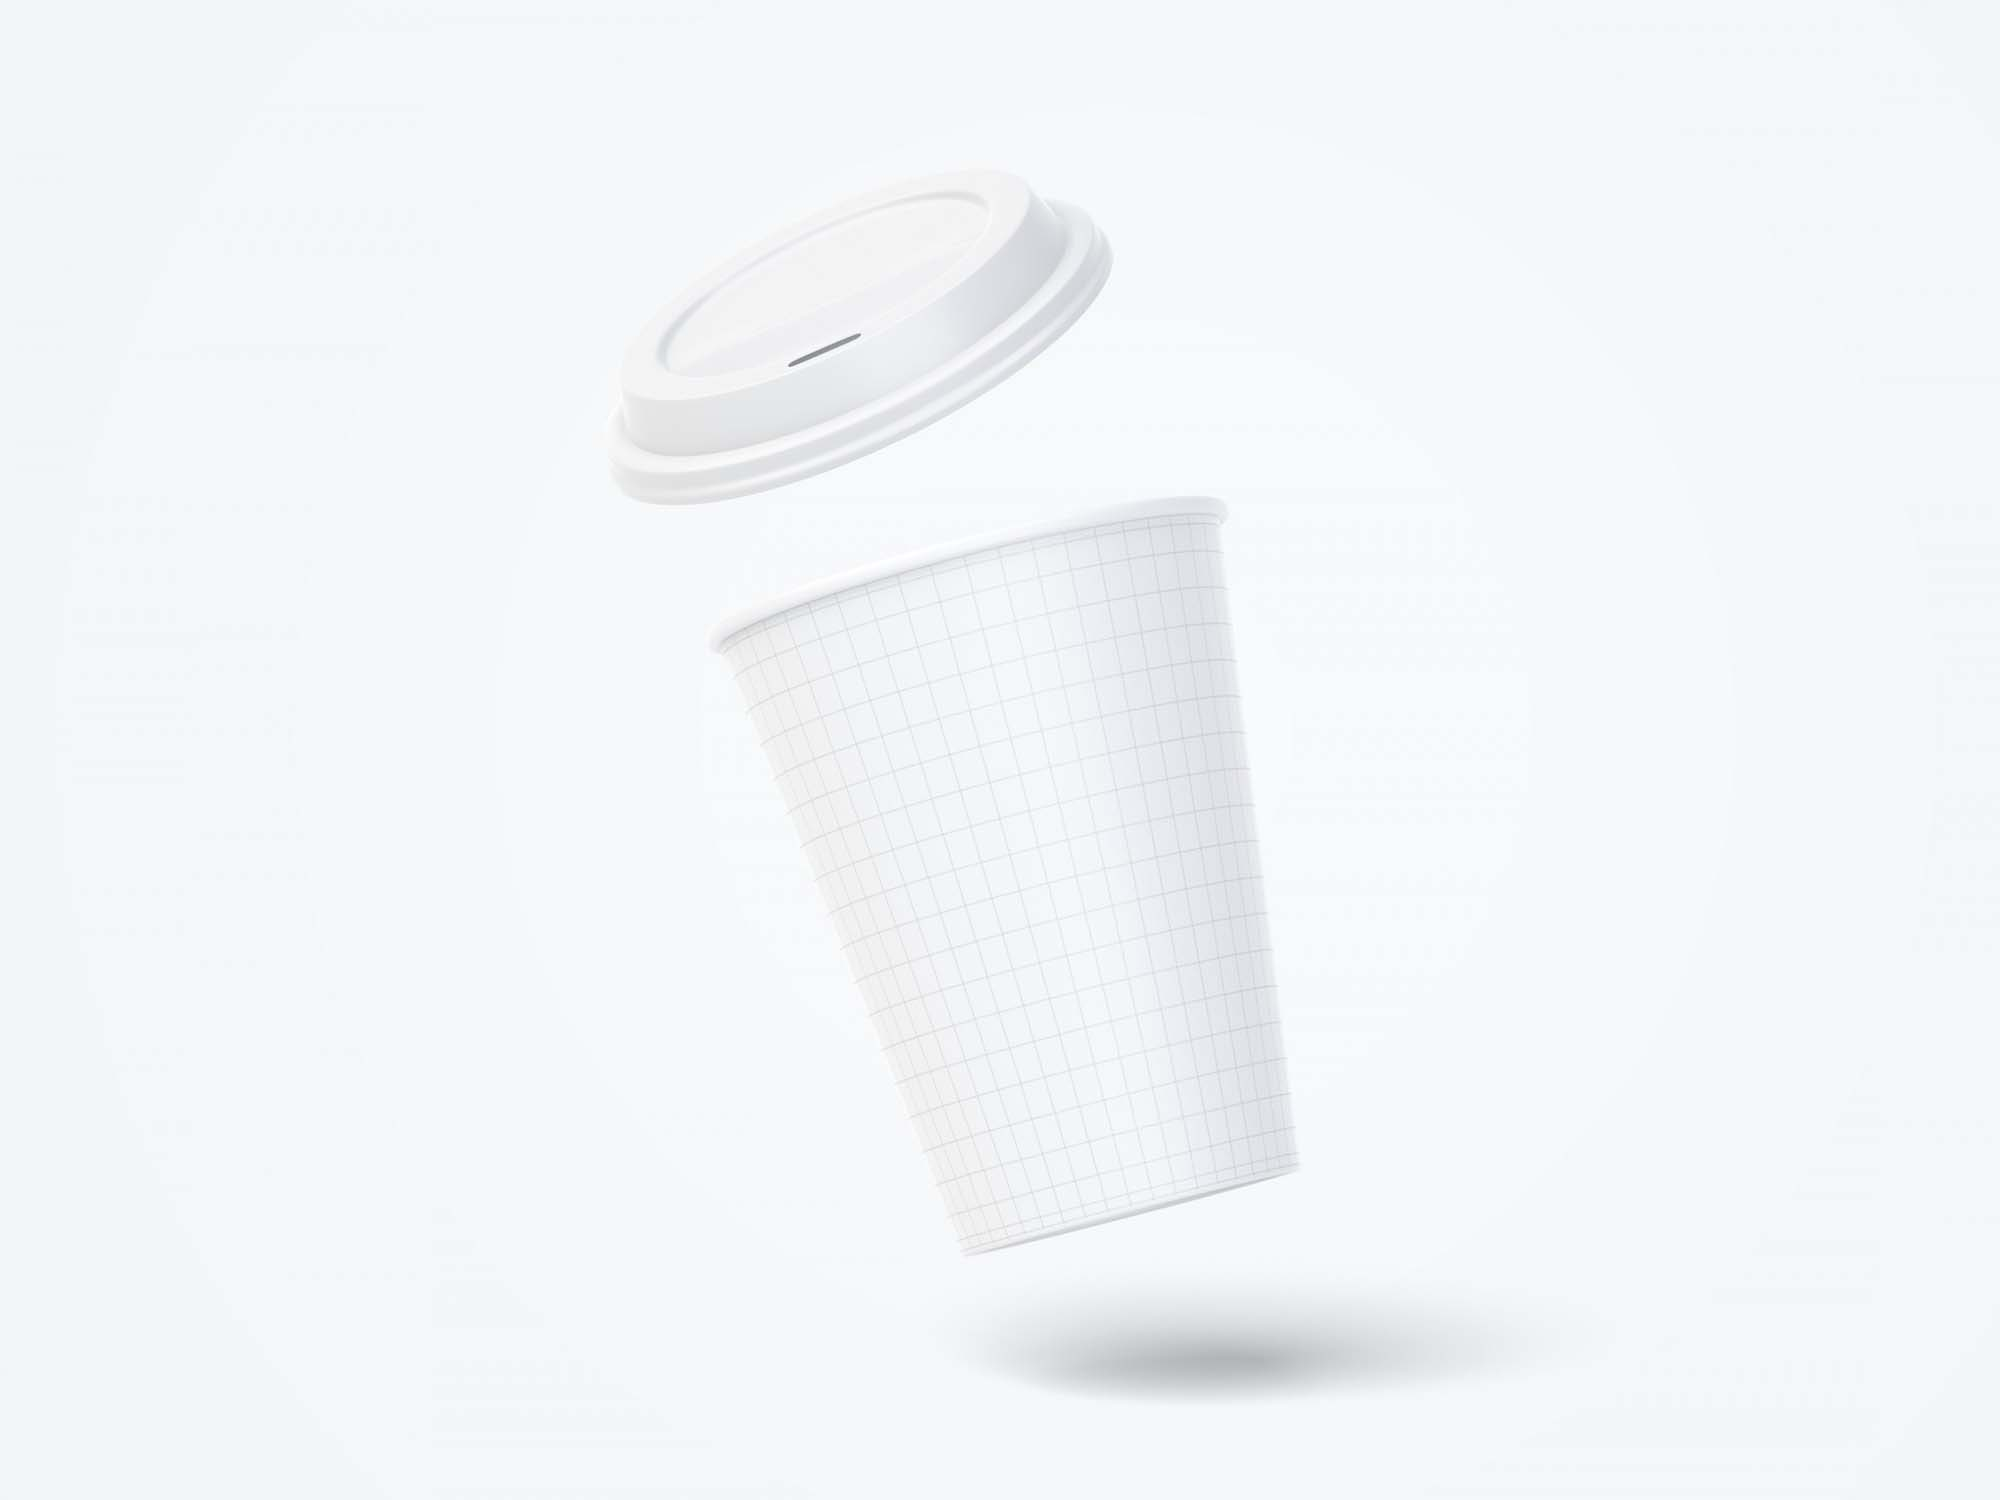 12Oz Paper Coffee Cup Mockup 3